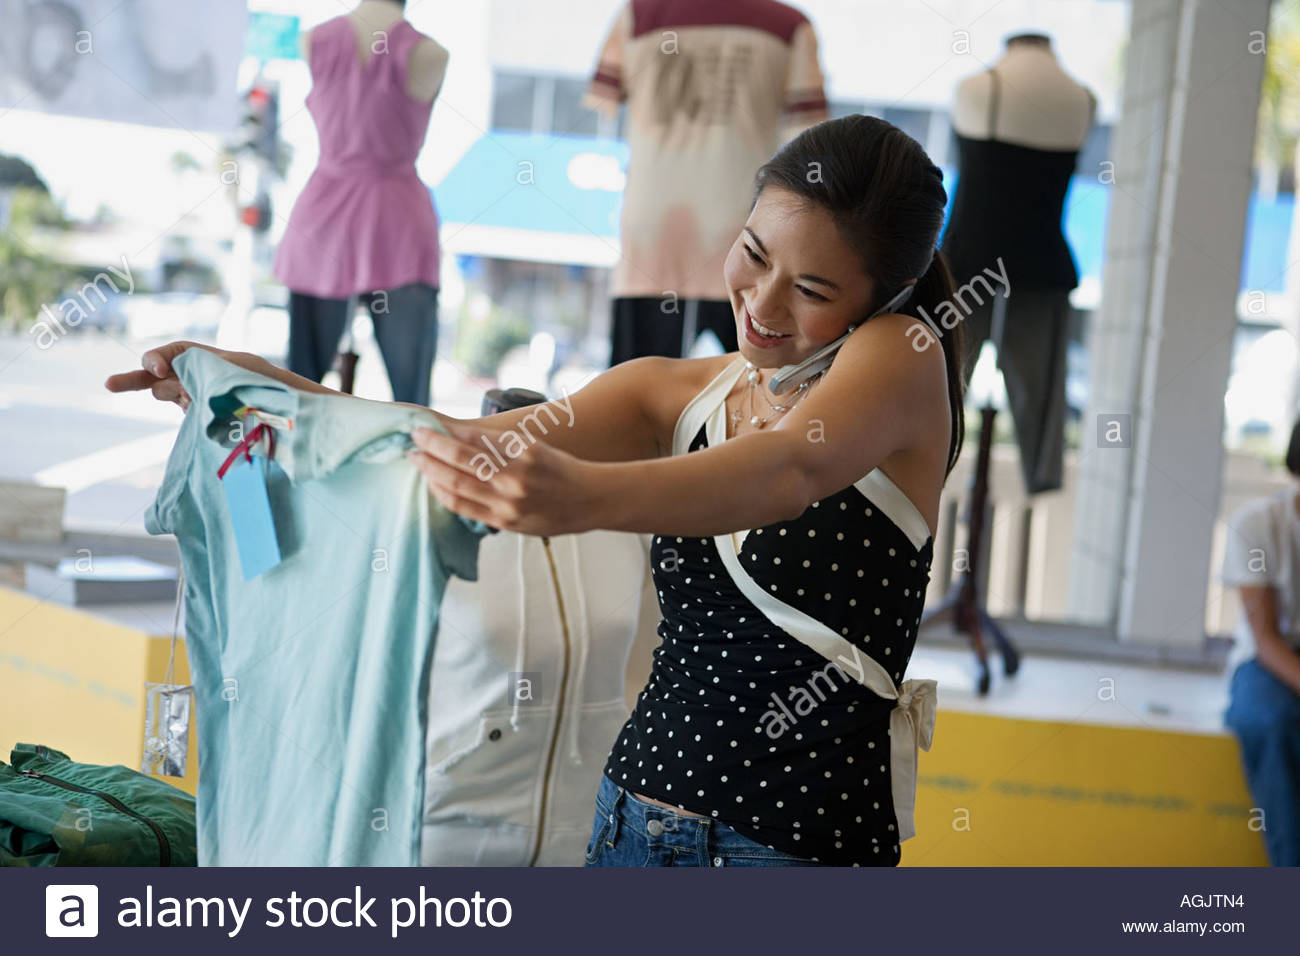 Woman on cellphone in clothes shop - Stock Image